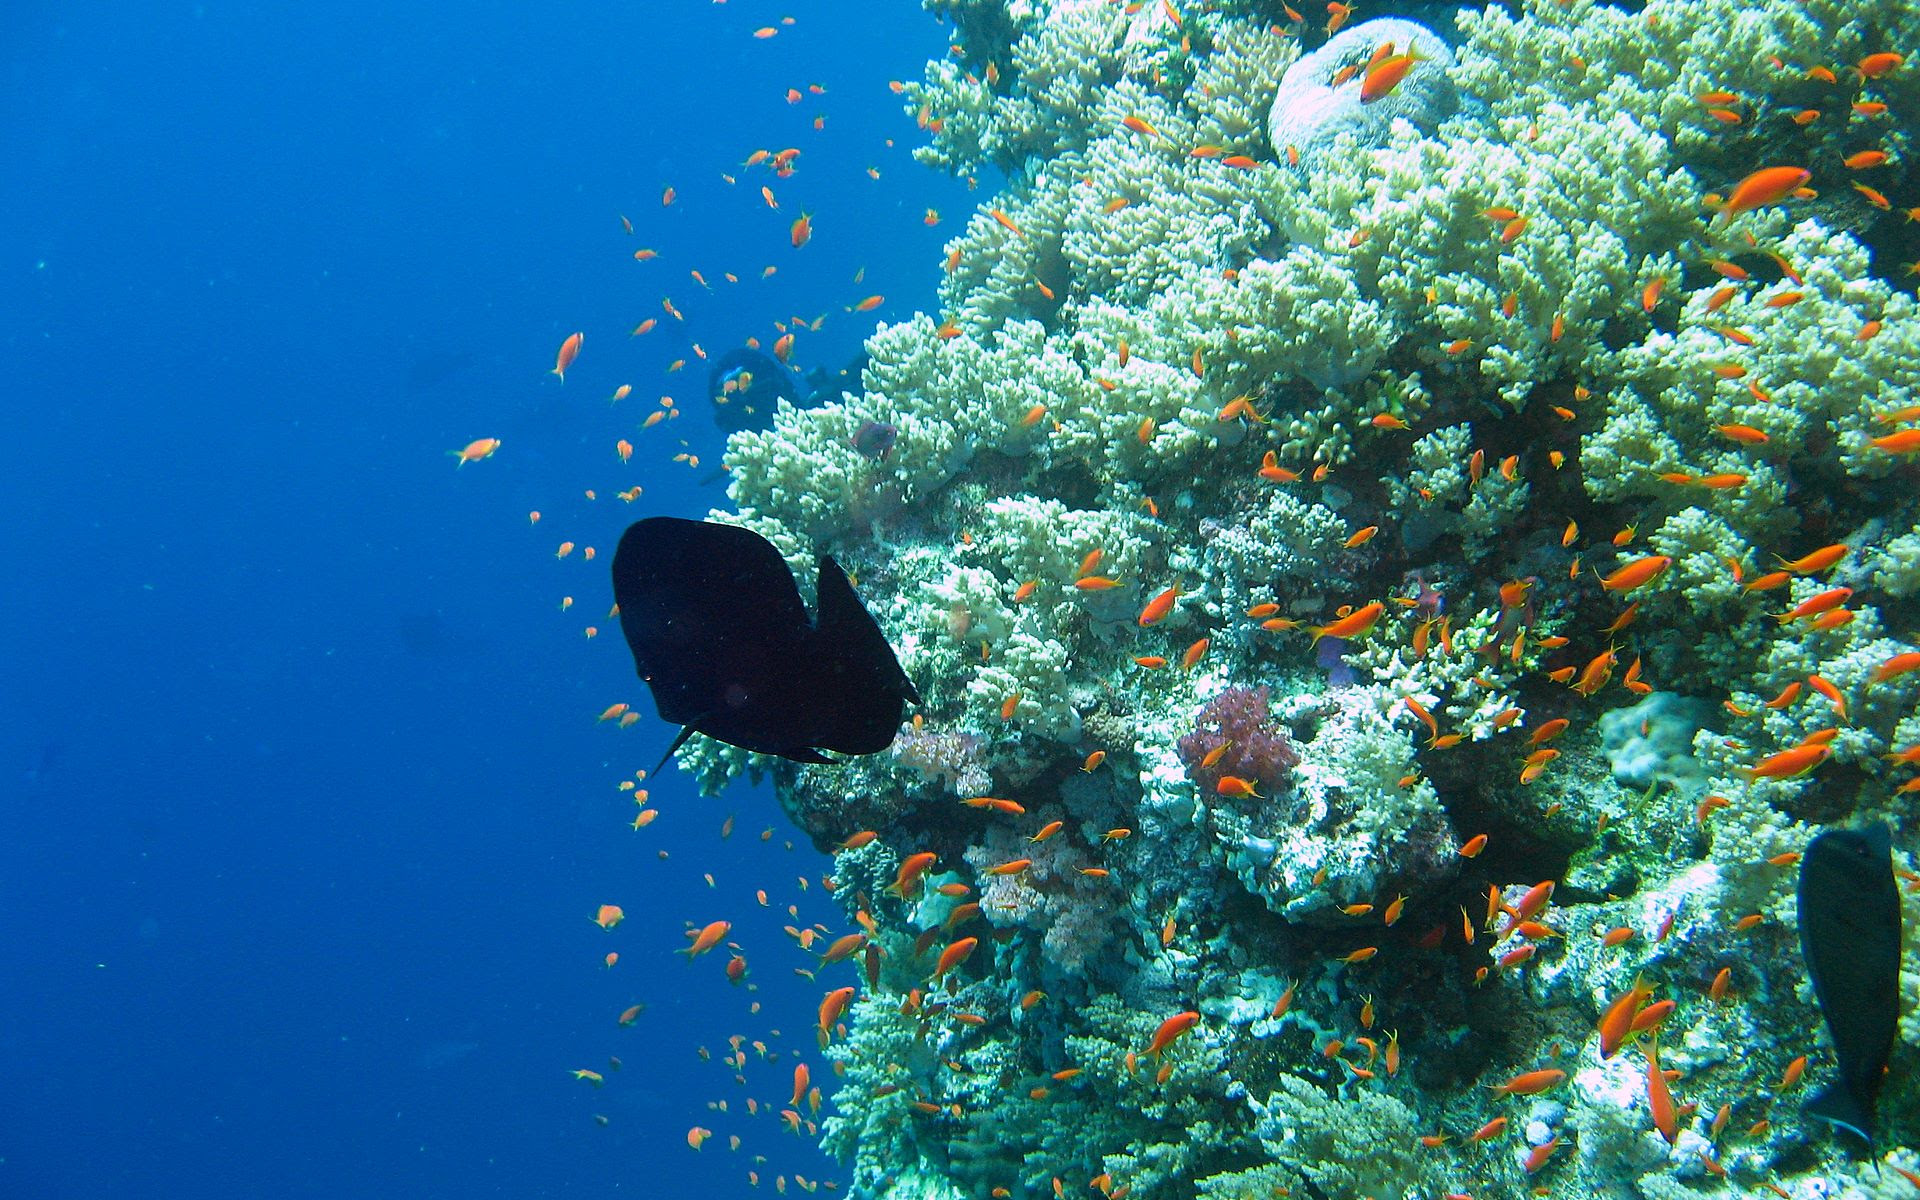 Underwater Photography images Underwater HD wallpaper and